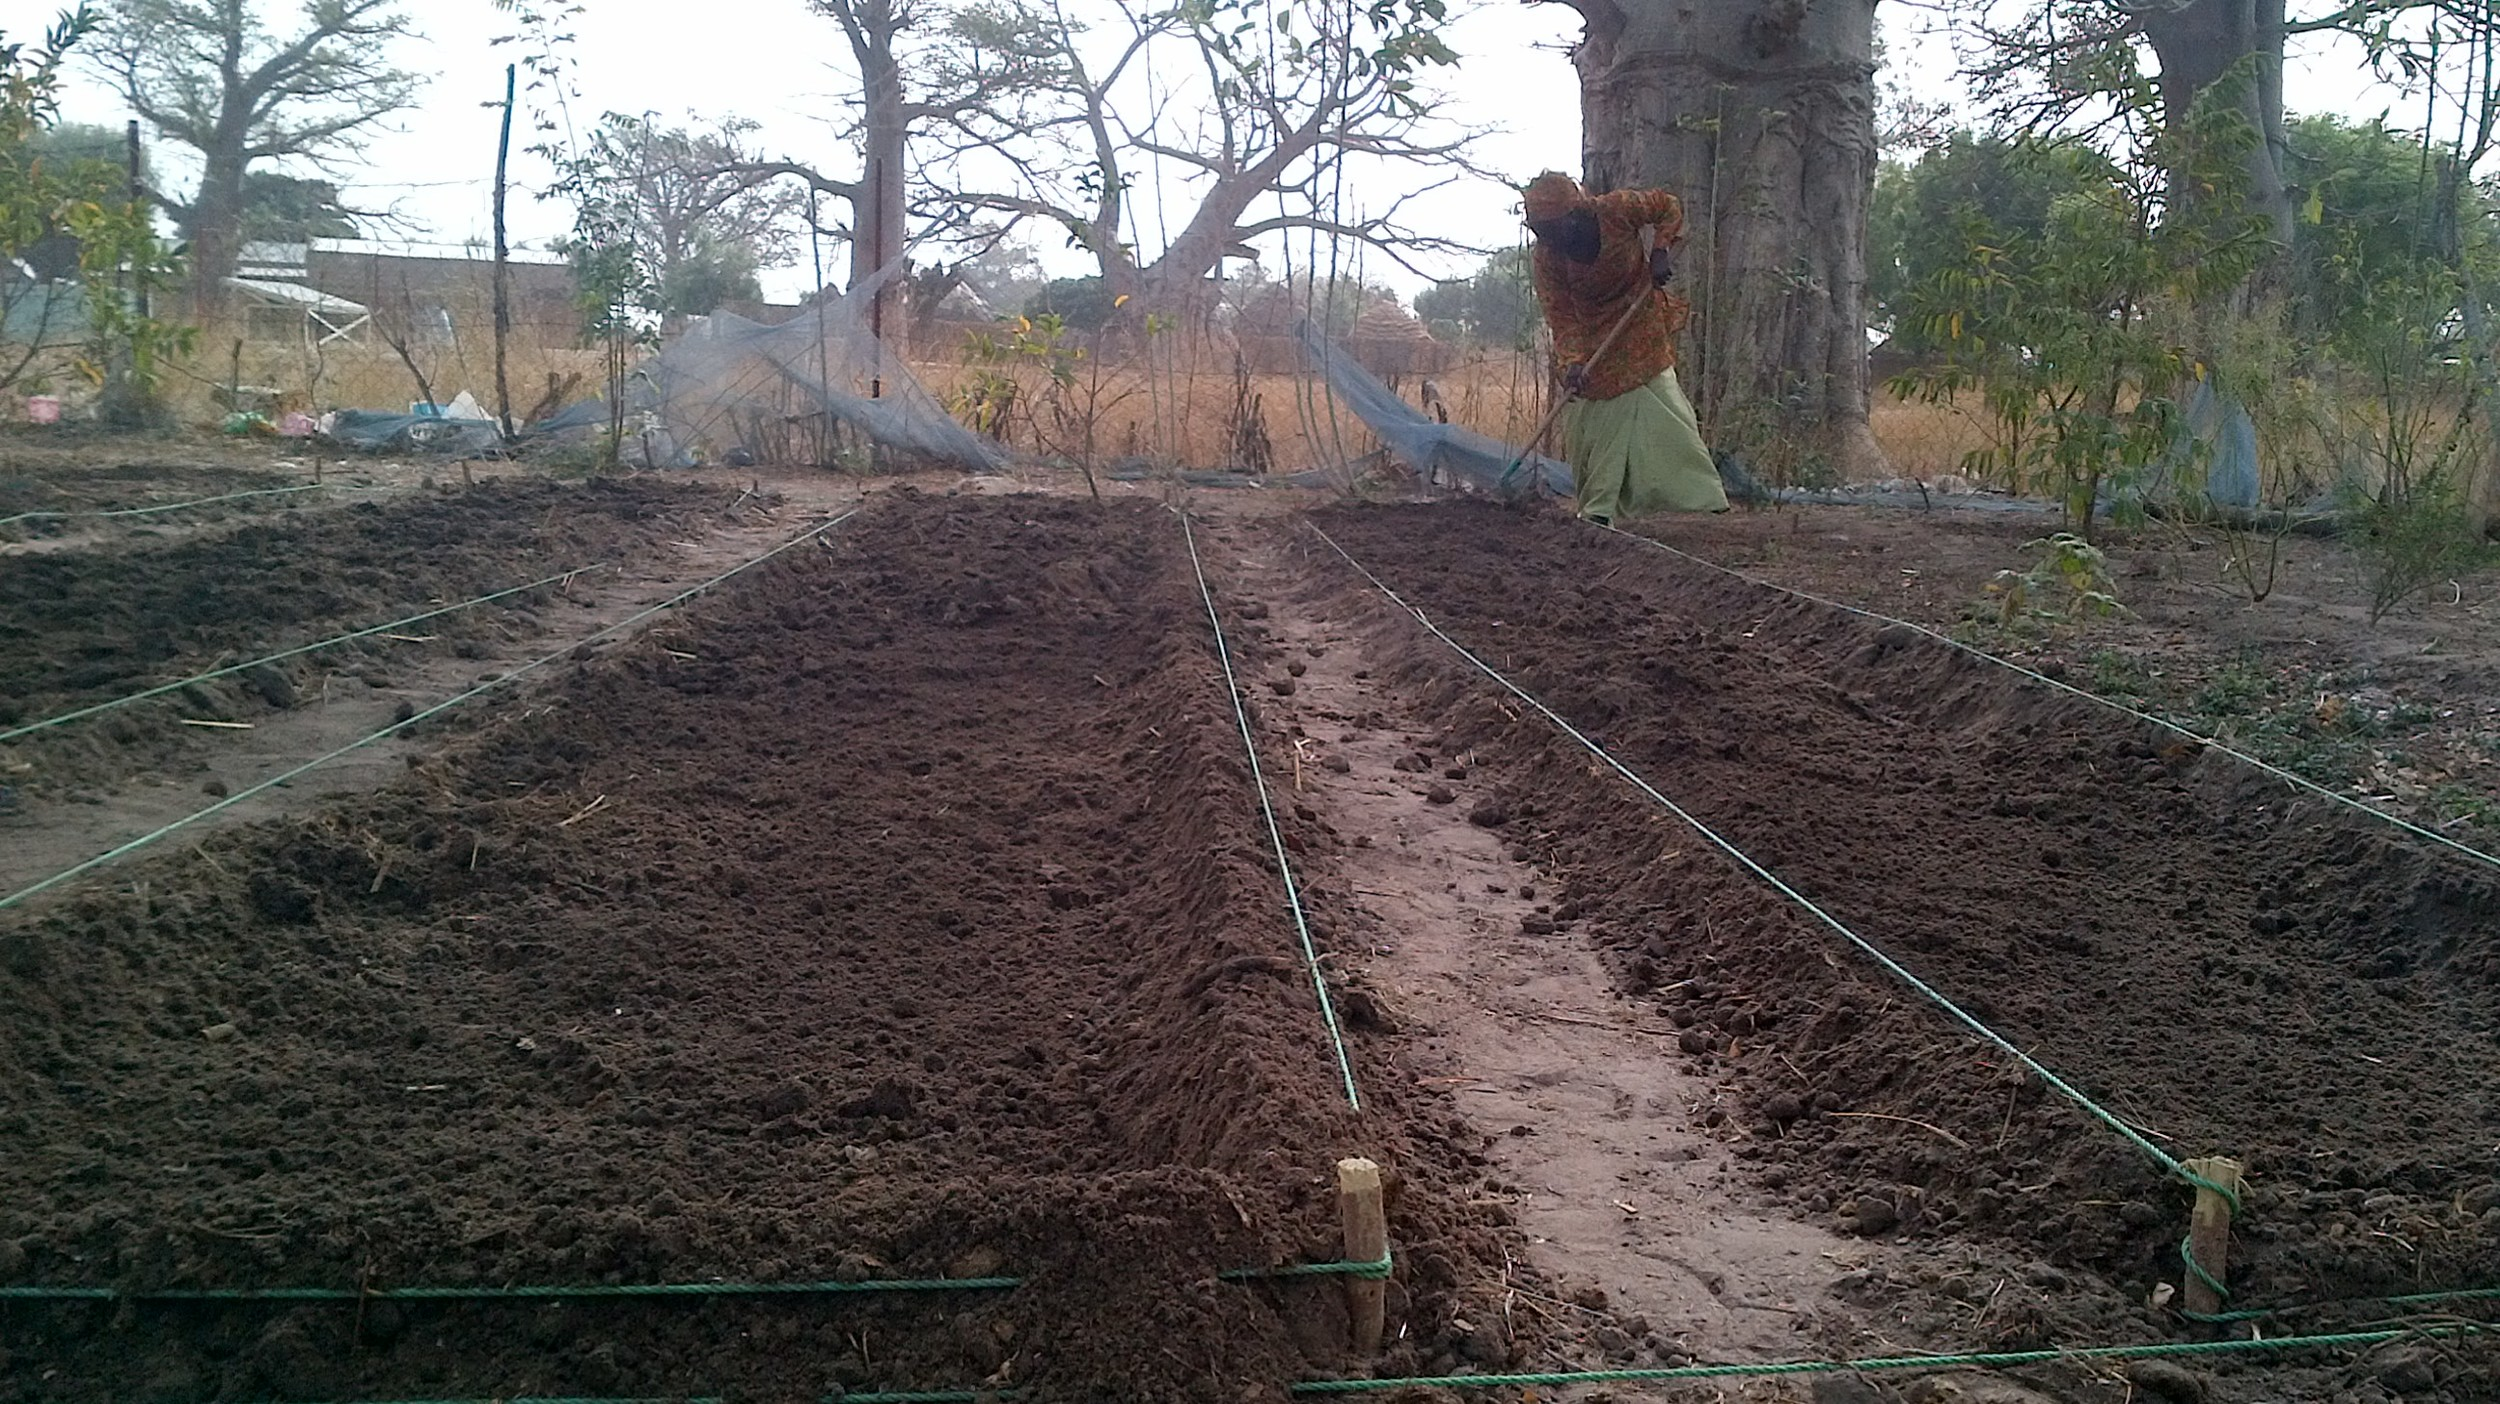 Alimatou preparing the soil at Kembu in preparation for  seeding vegetable variety trials in Senegal